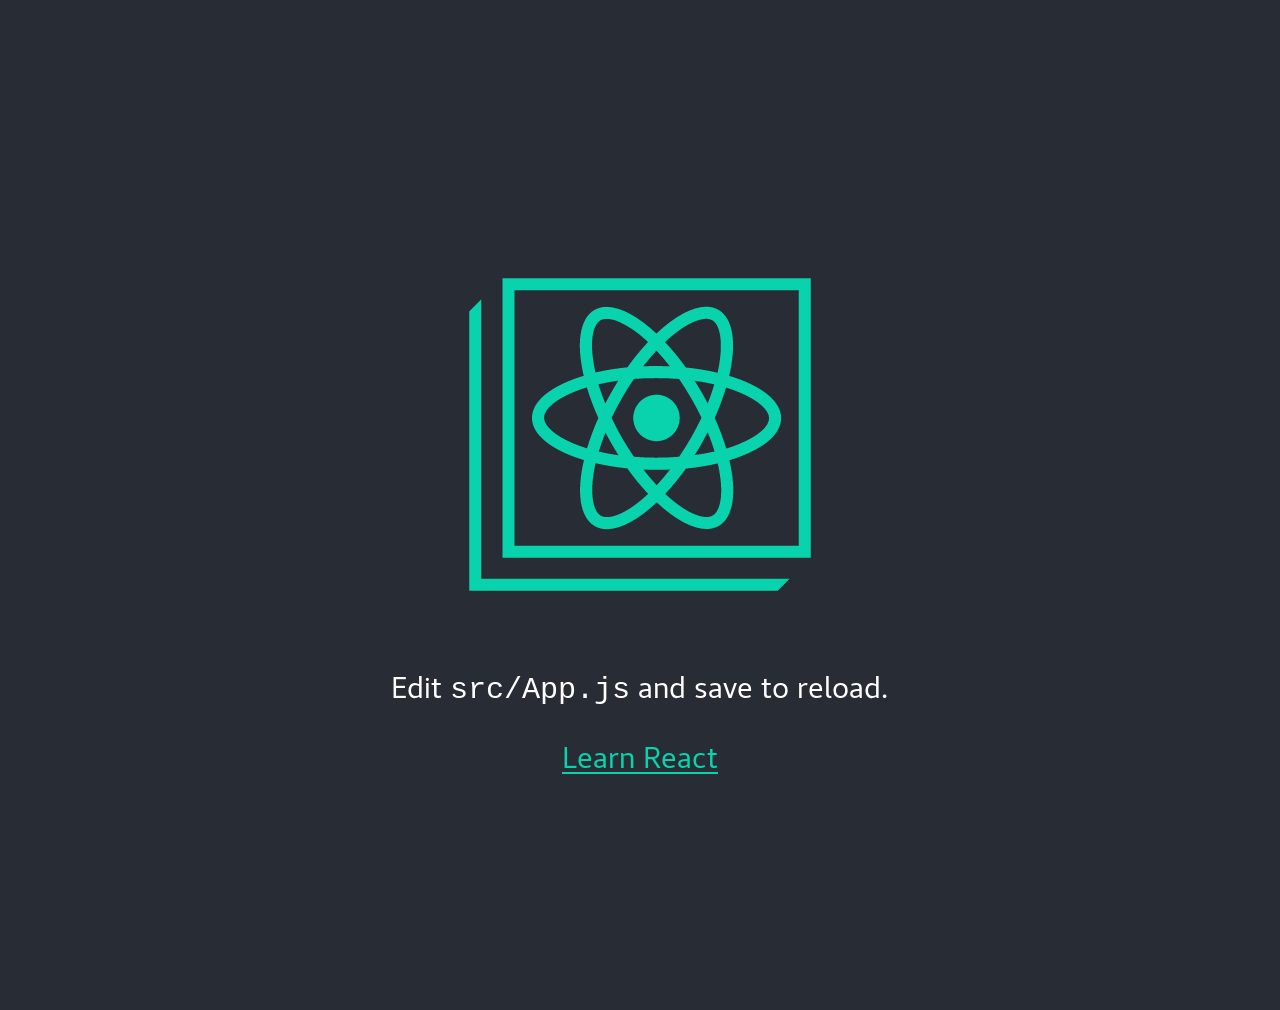 Create React App's starting page